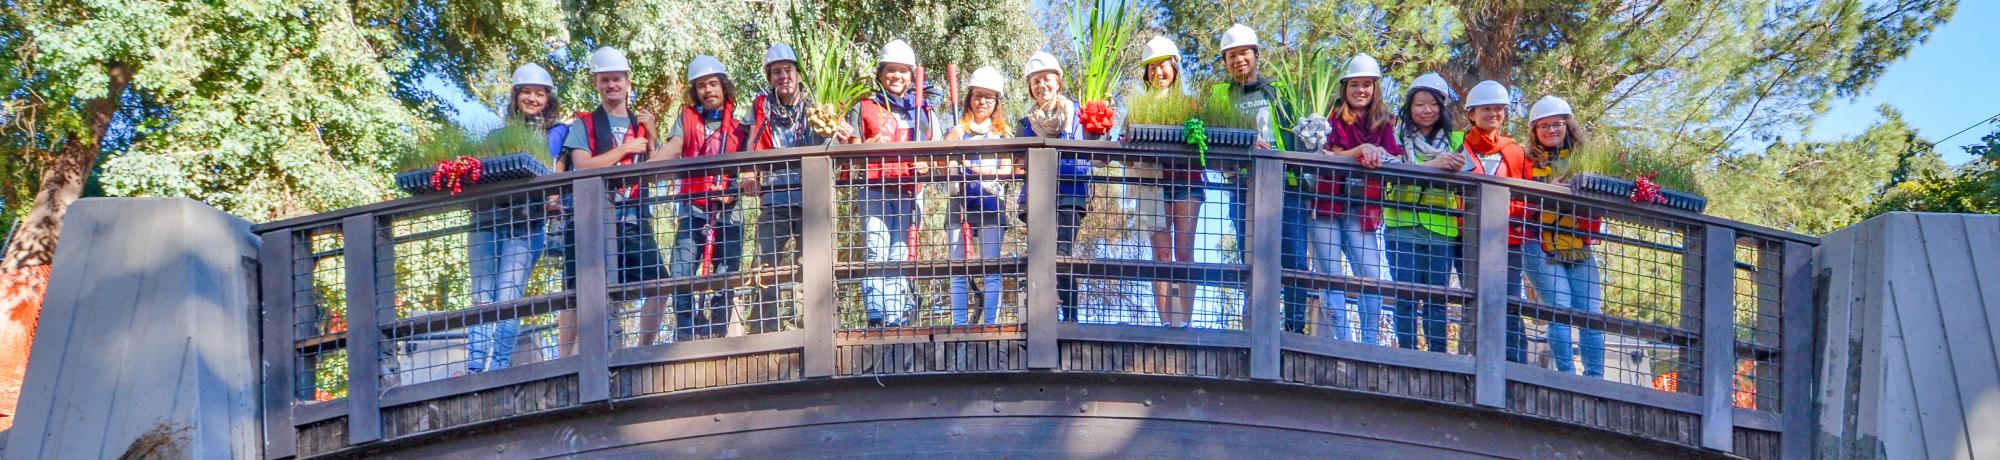 Image of the Learning by Leading Waterway Stewardship team on a bridge over the Arboretum Waterway.